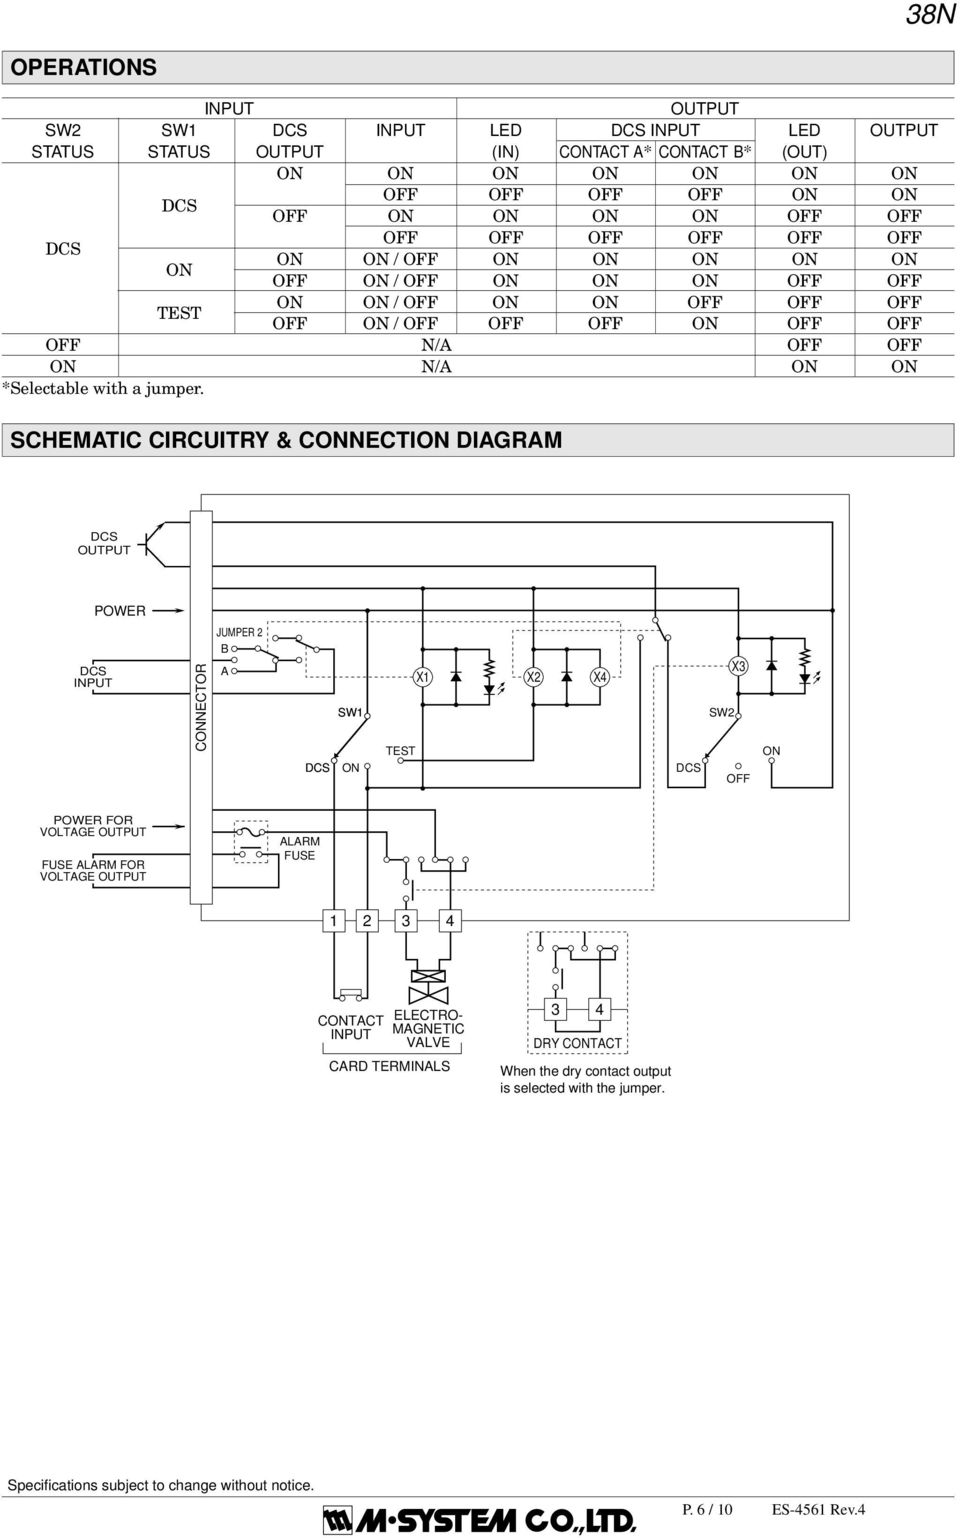 SCHEMATIC CIRCUITRY & CNECTI DIAGRAM POWER CNECTOR JUMPER 2 B A TEST X1 X2 X SW2 X OFF POWER FOR VOLTAGE FUSE ALARM FOR VOLTAGE ALARM